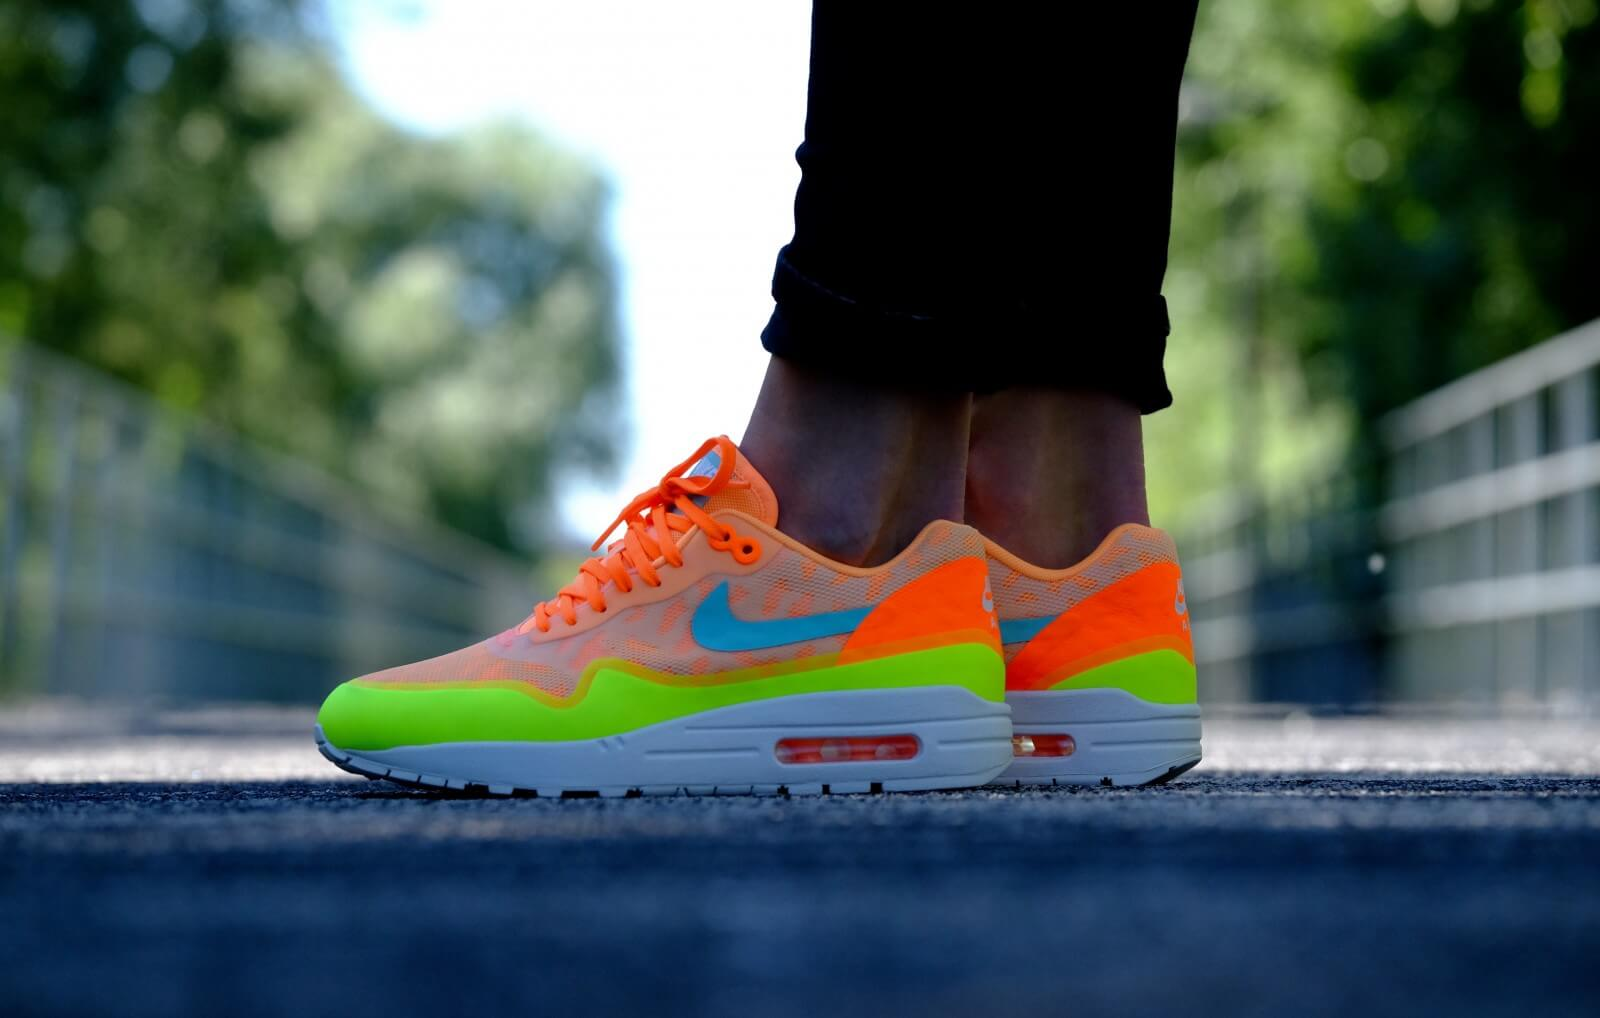 Nike Wmns Air Max 1 NS Peach Cream Hyper Turquoise 844982 800